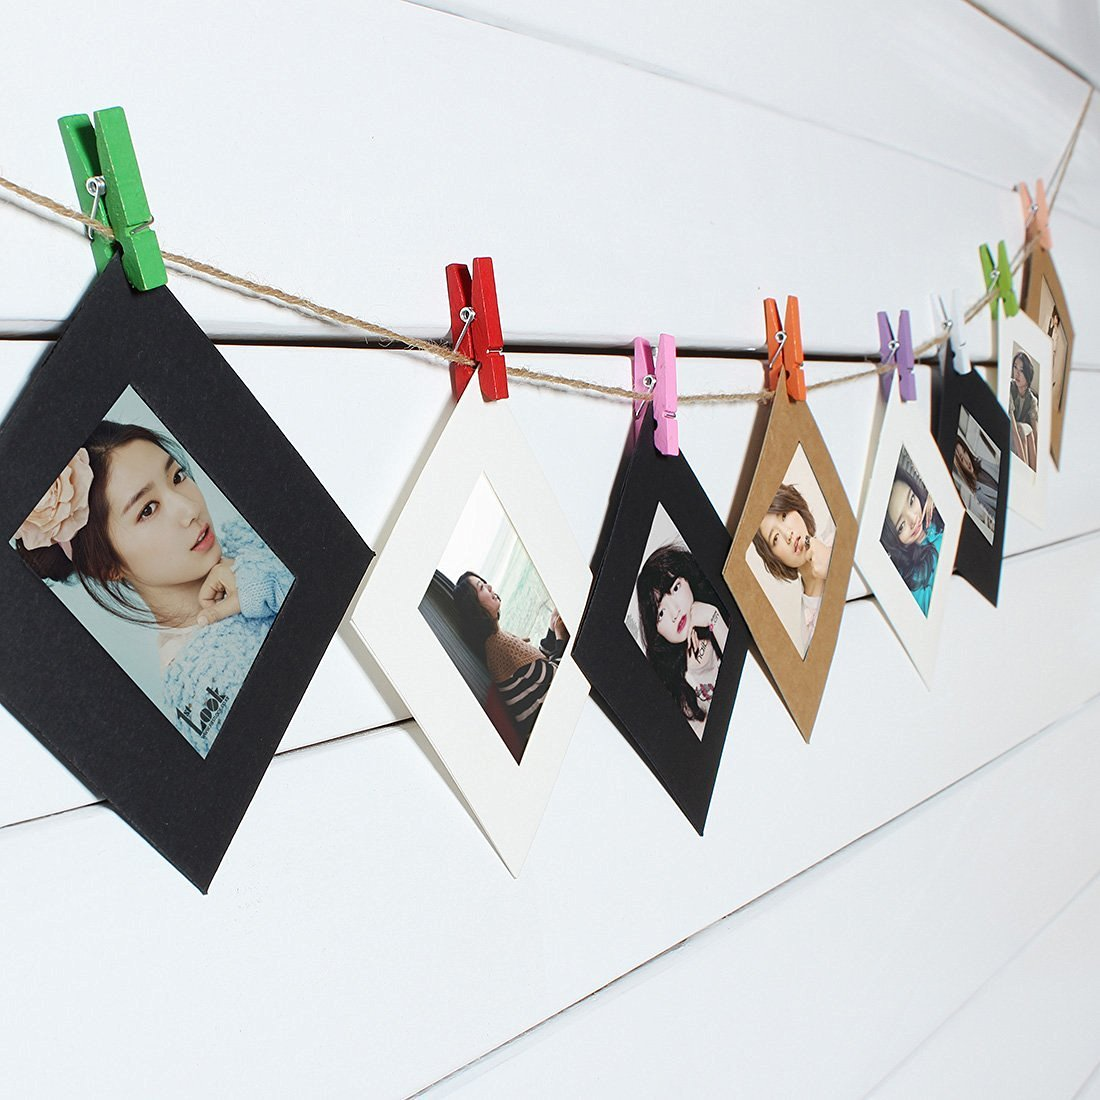 10 Pcs 3 Inch Photo Paper DIY Wall Picture Hanging Album Frame With Rope Clips Flim / . : 10 Pcs 3 Inch Photo Paper DIY Wall Picture Hanging Album . . Specification: . Material: Kraft Pap